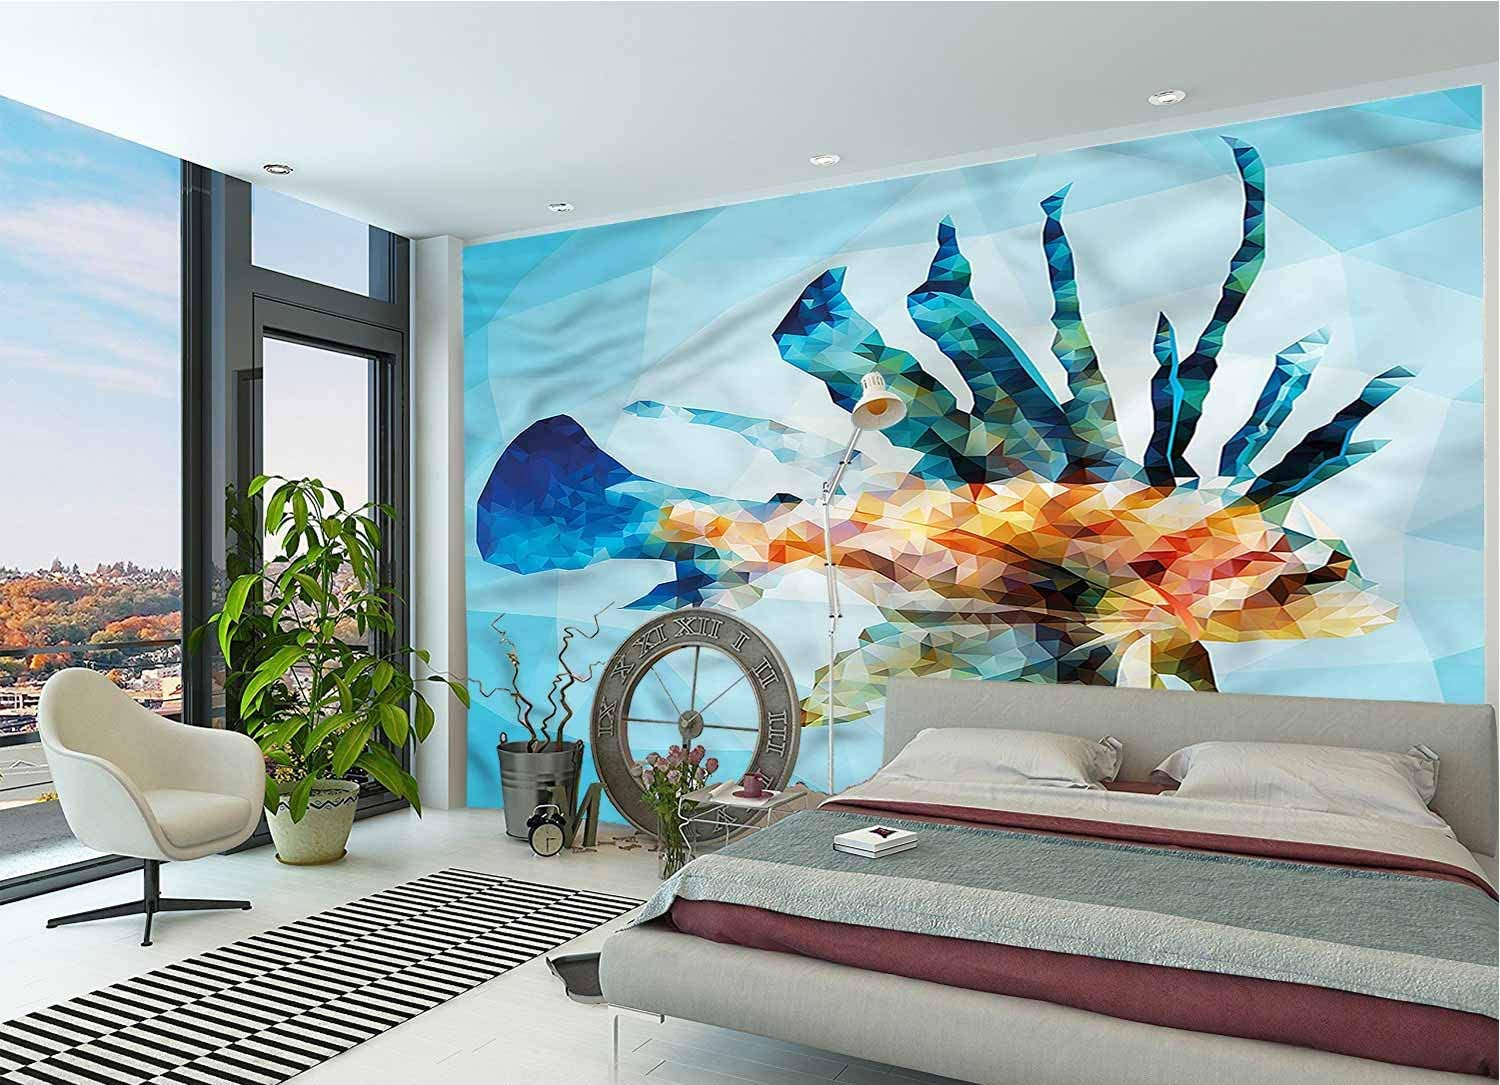 LCGGDB Fish Large Wall Mural,Ornamental Fish Style Removable Large Sticker Foil Wall Decor for Office Kids Bedroom Nursery Family Decor-96x66 Inch